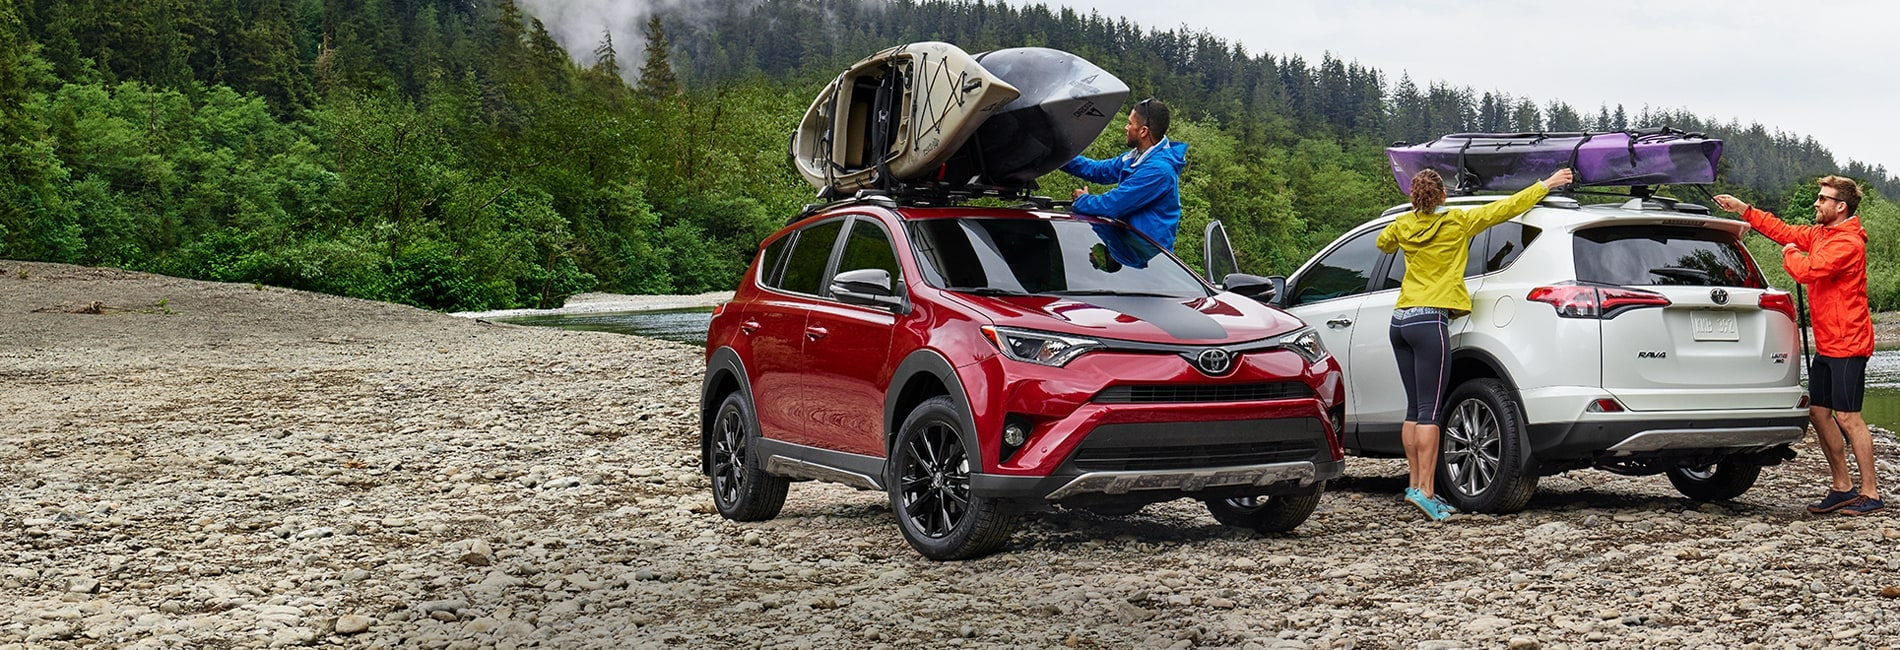 Toyota RAV4 Exterior Vehicle Features